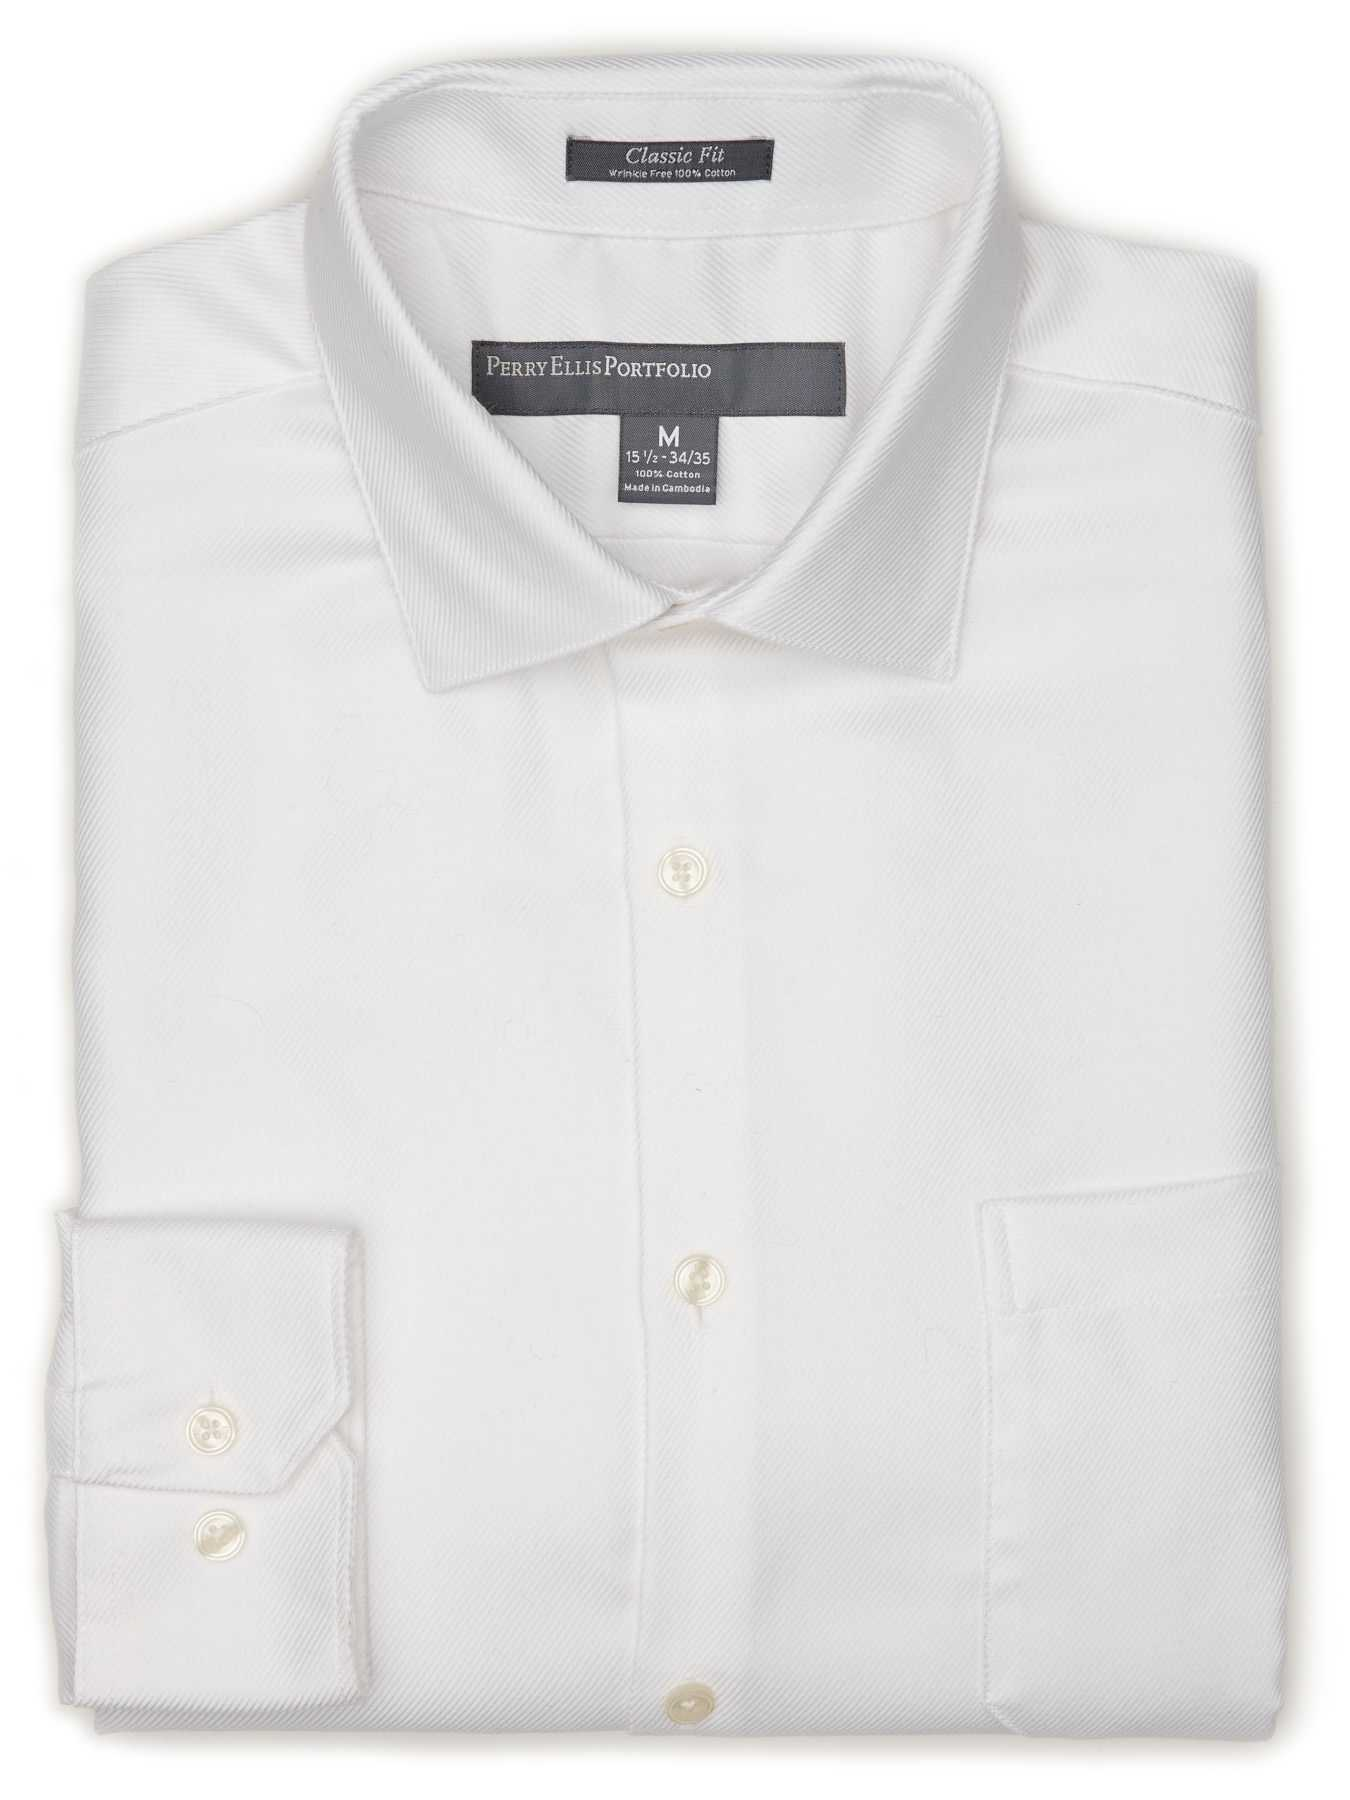 Perry Ellis Classic Fit Twill Portfolio Dress Shirt